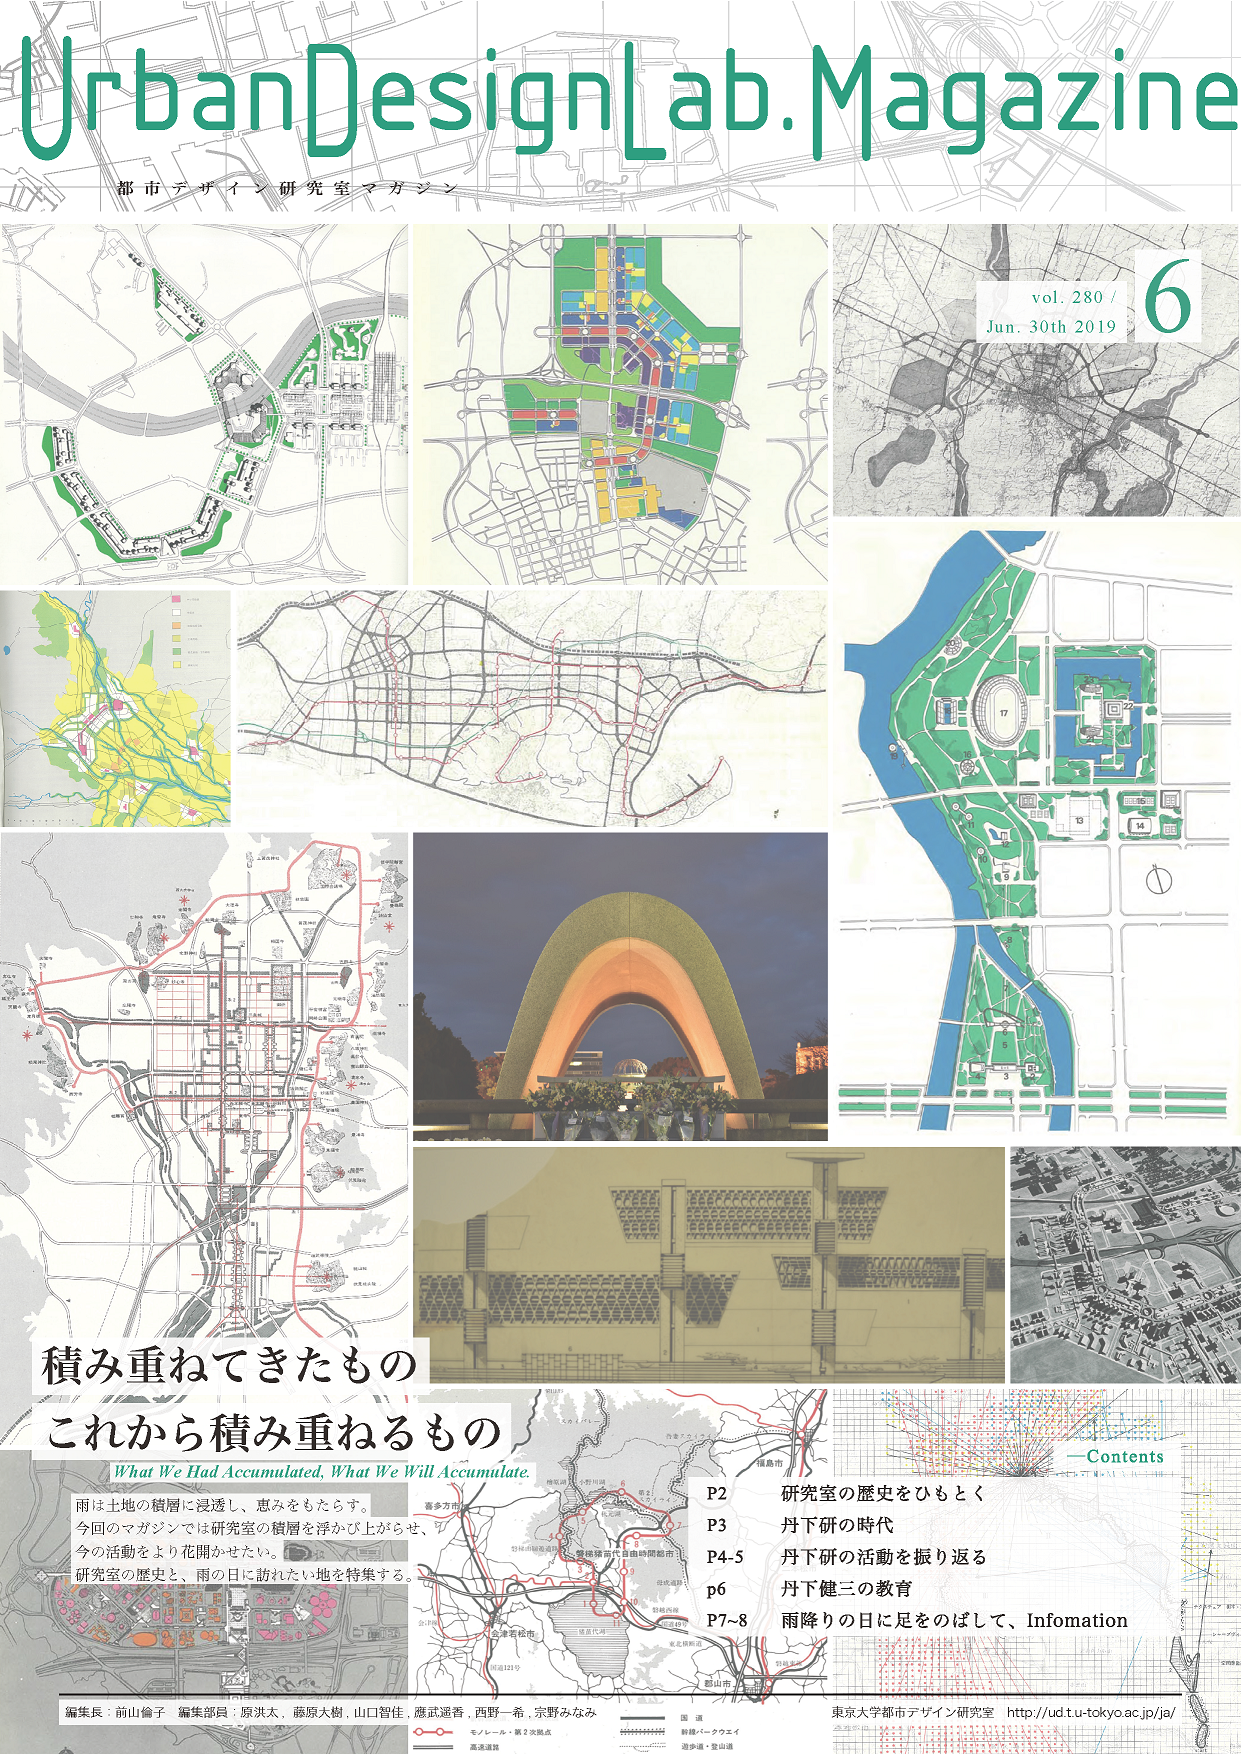 http://ud.t.u-tokyo.ac.jp/news/_images/280_%E3%83%9A%E3%83%BC%E3%82%B8_1.png